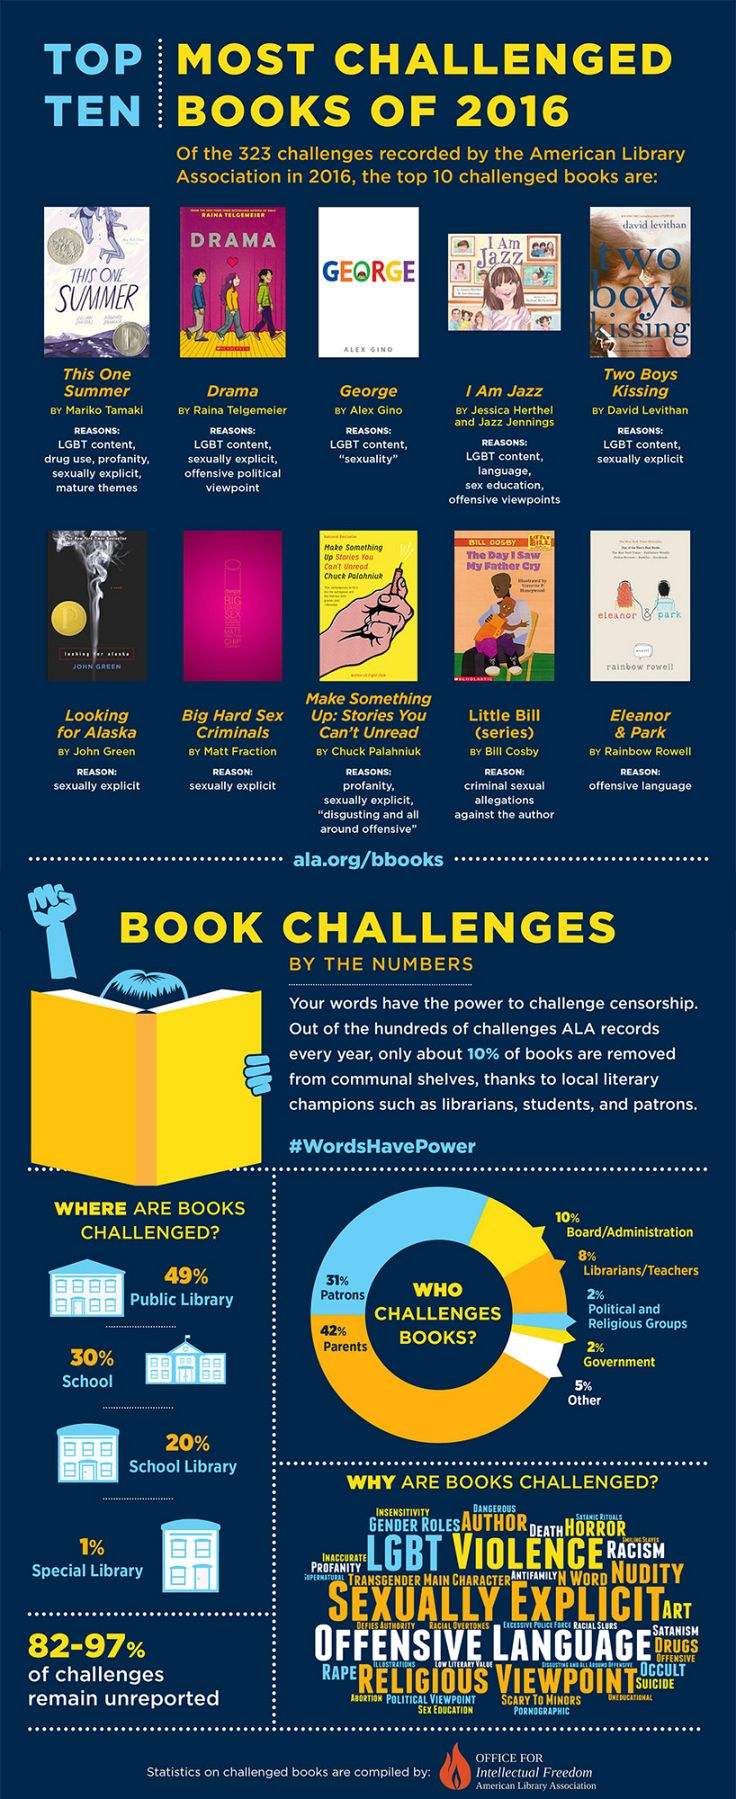 """List, Video, Infographic: ALA's Office for Intellectual Freedom (OIF) """"Top 10 Challenged Books of 2016″   LJ INFOdocket"""